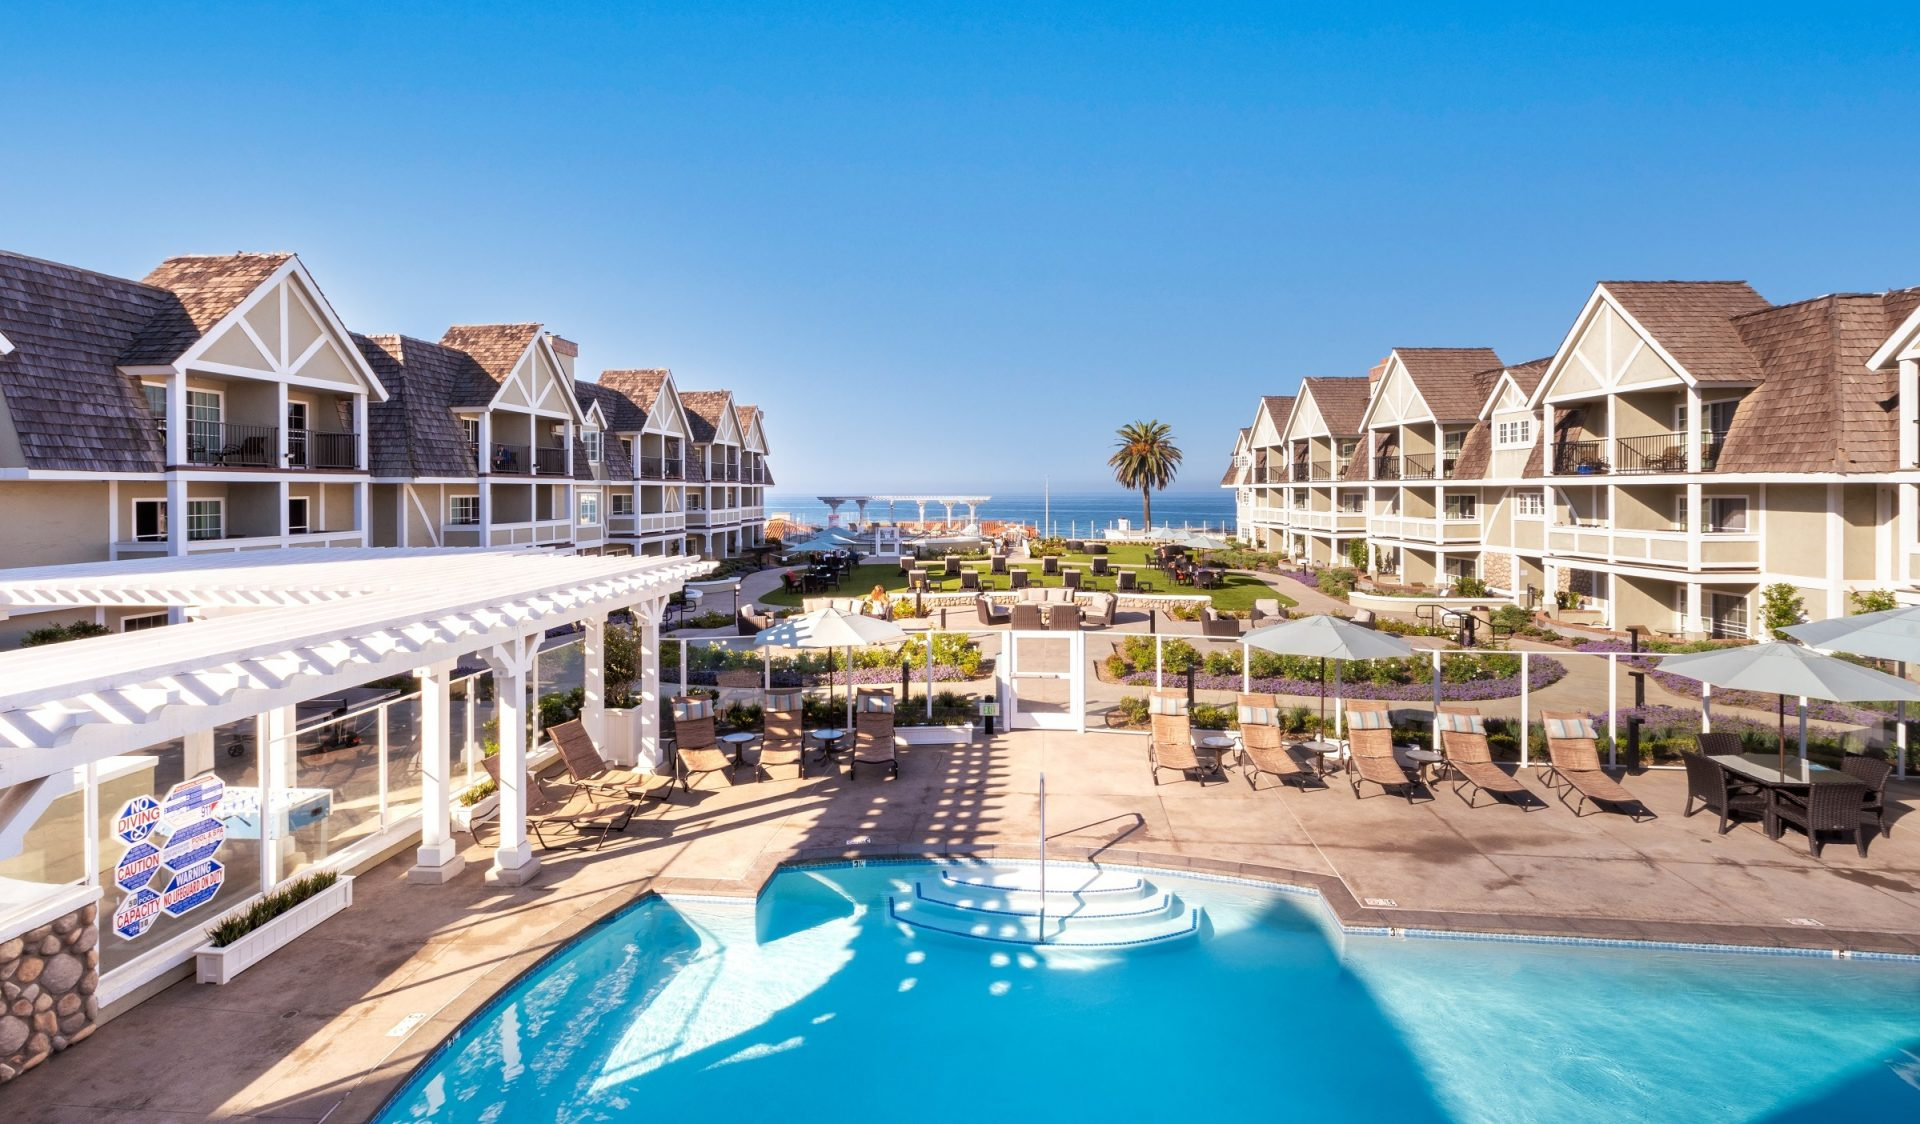 Home Page - Welcome to Carlsbad Inn